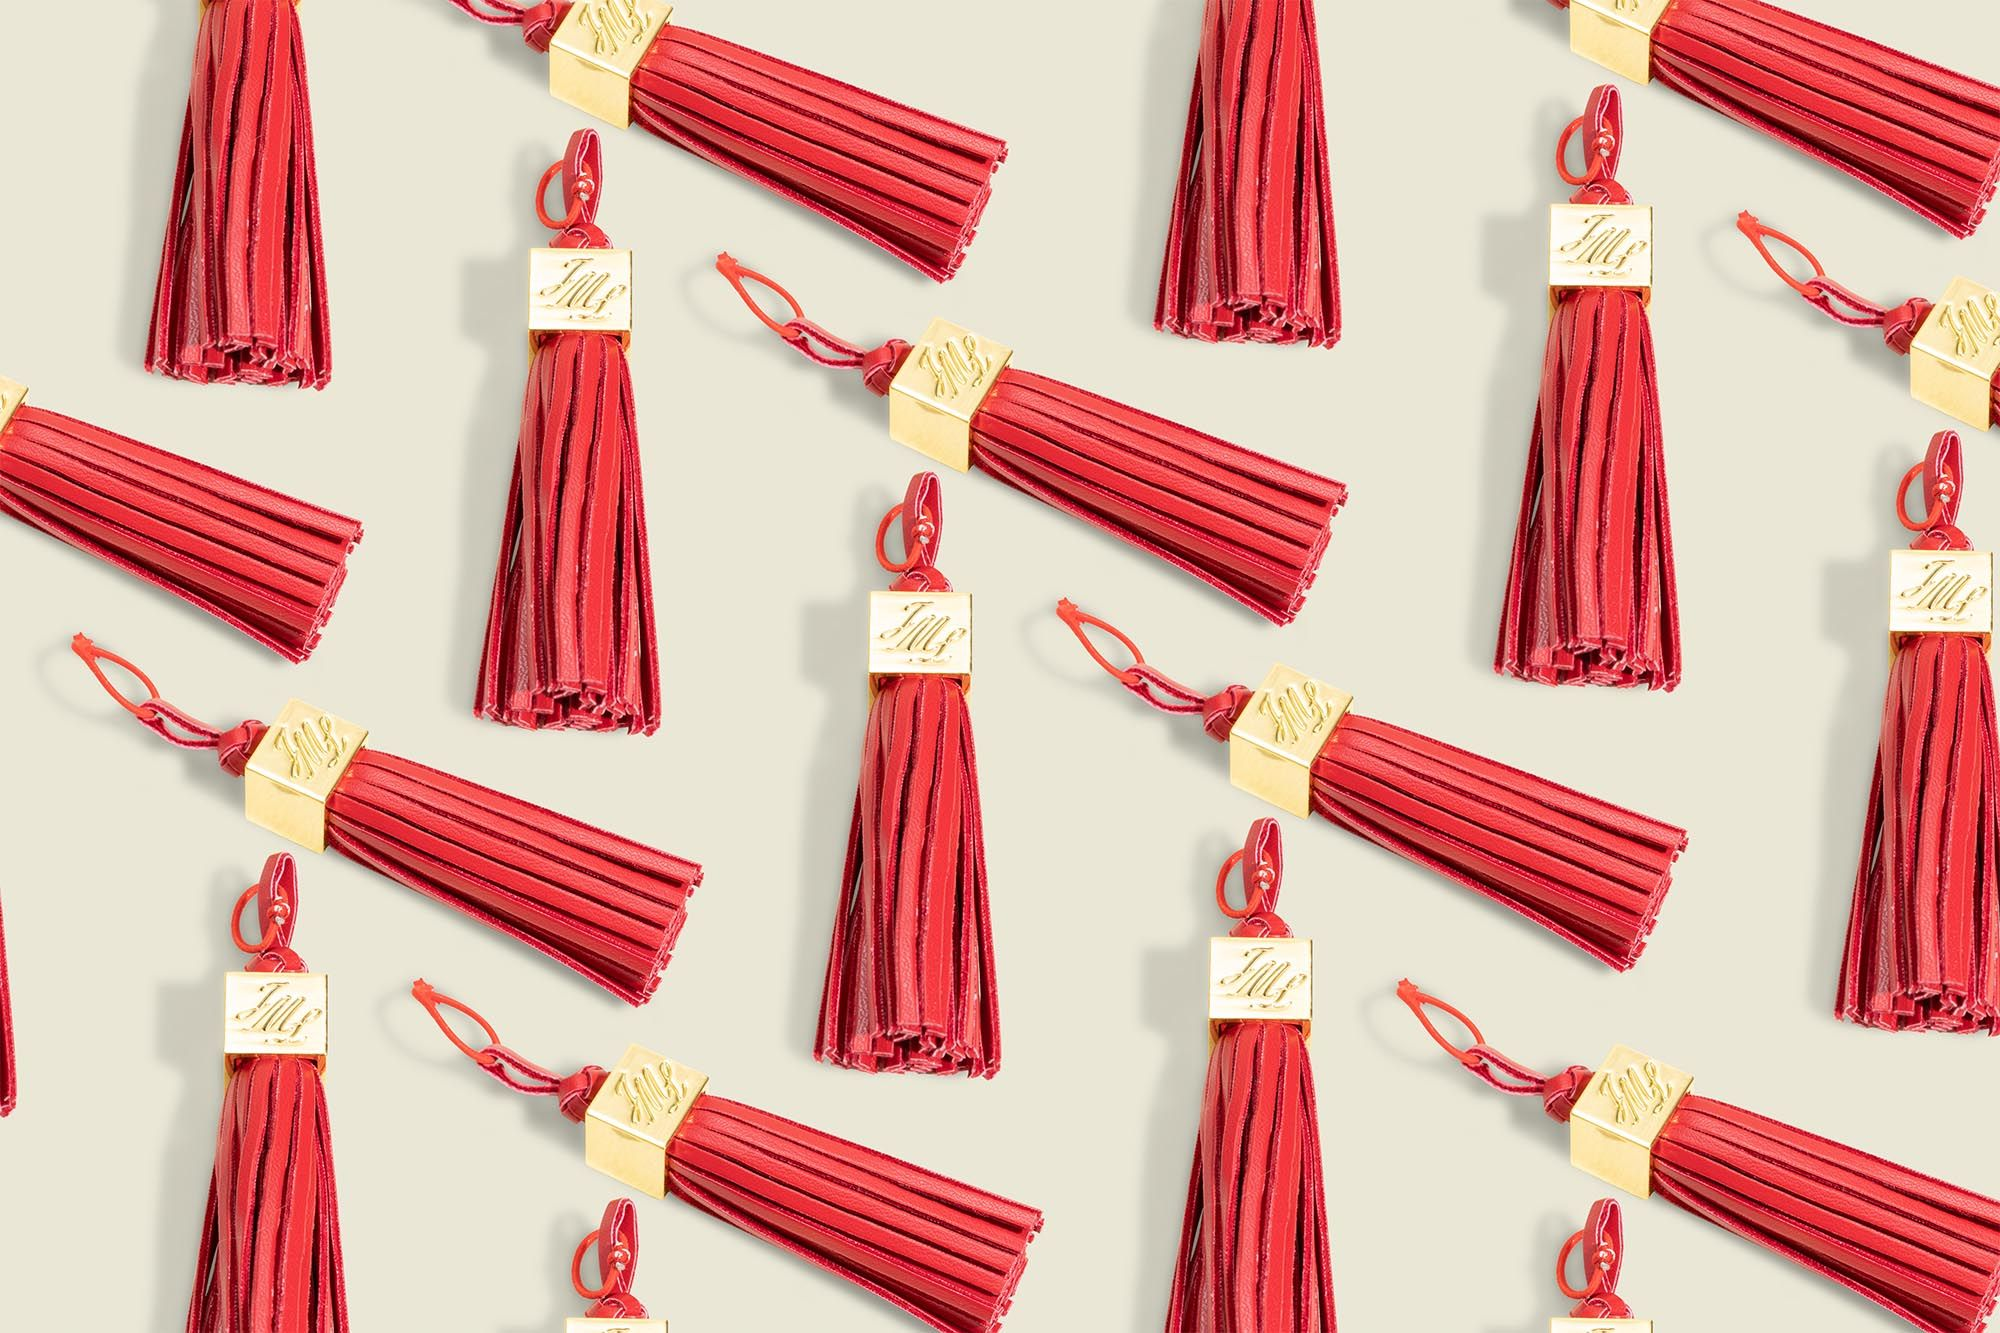 Red tassle with metal details